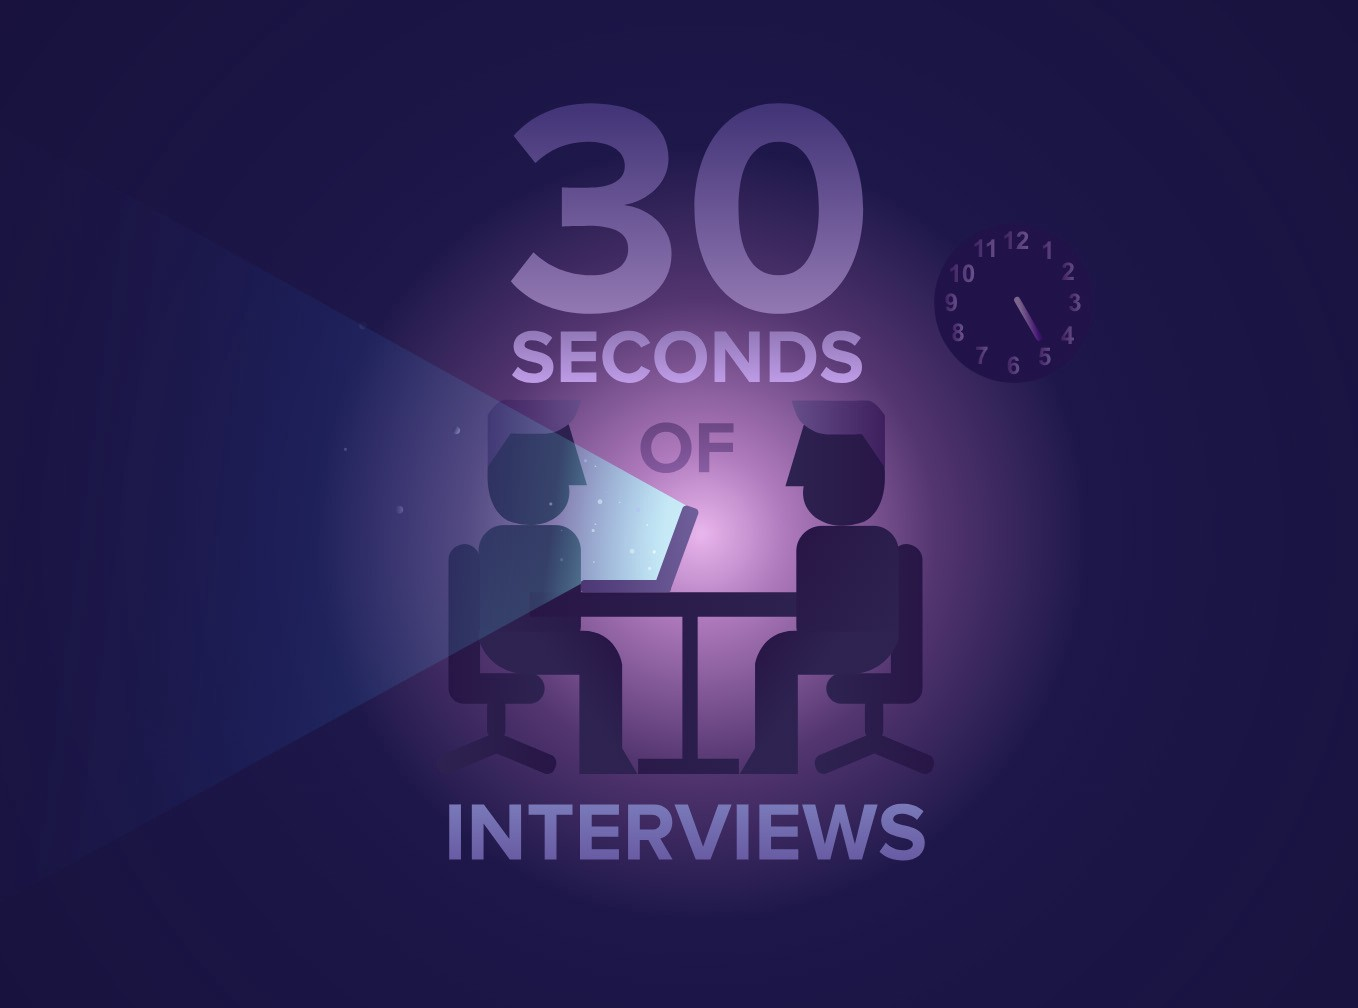 Prepare for you next interview with 30 seconds of interviews